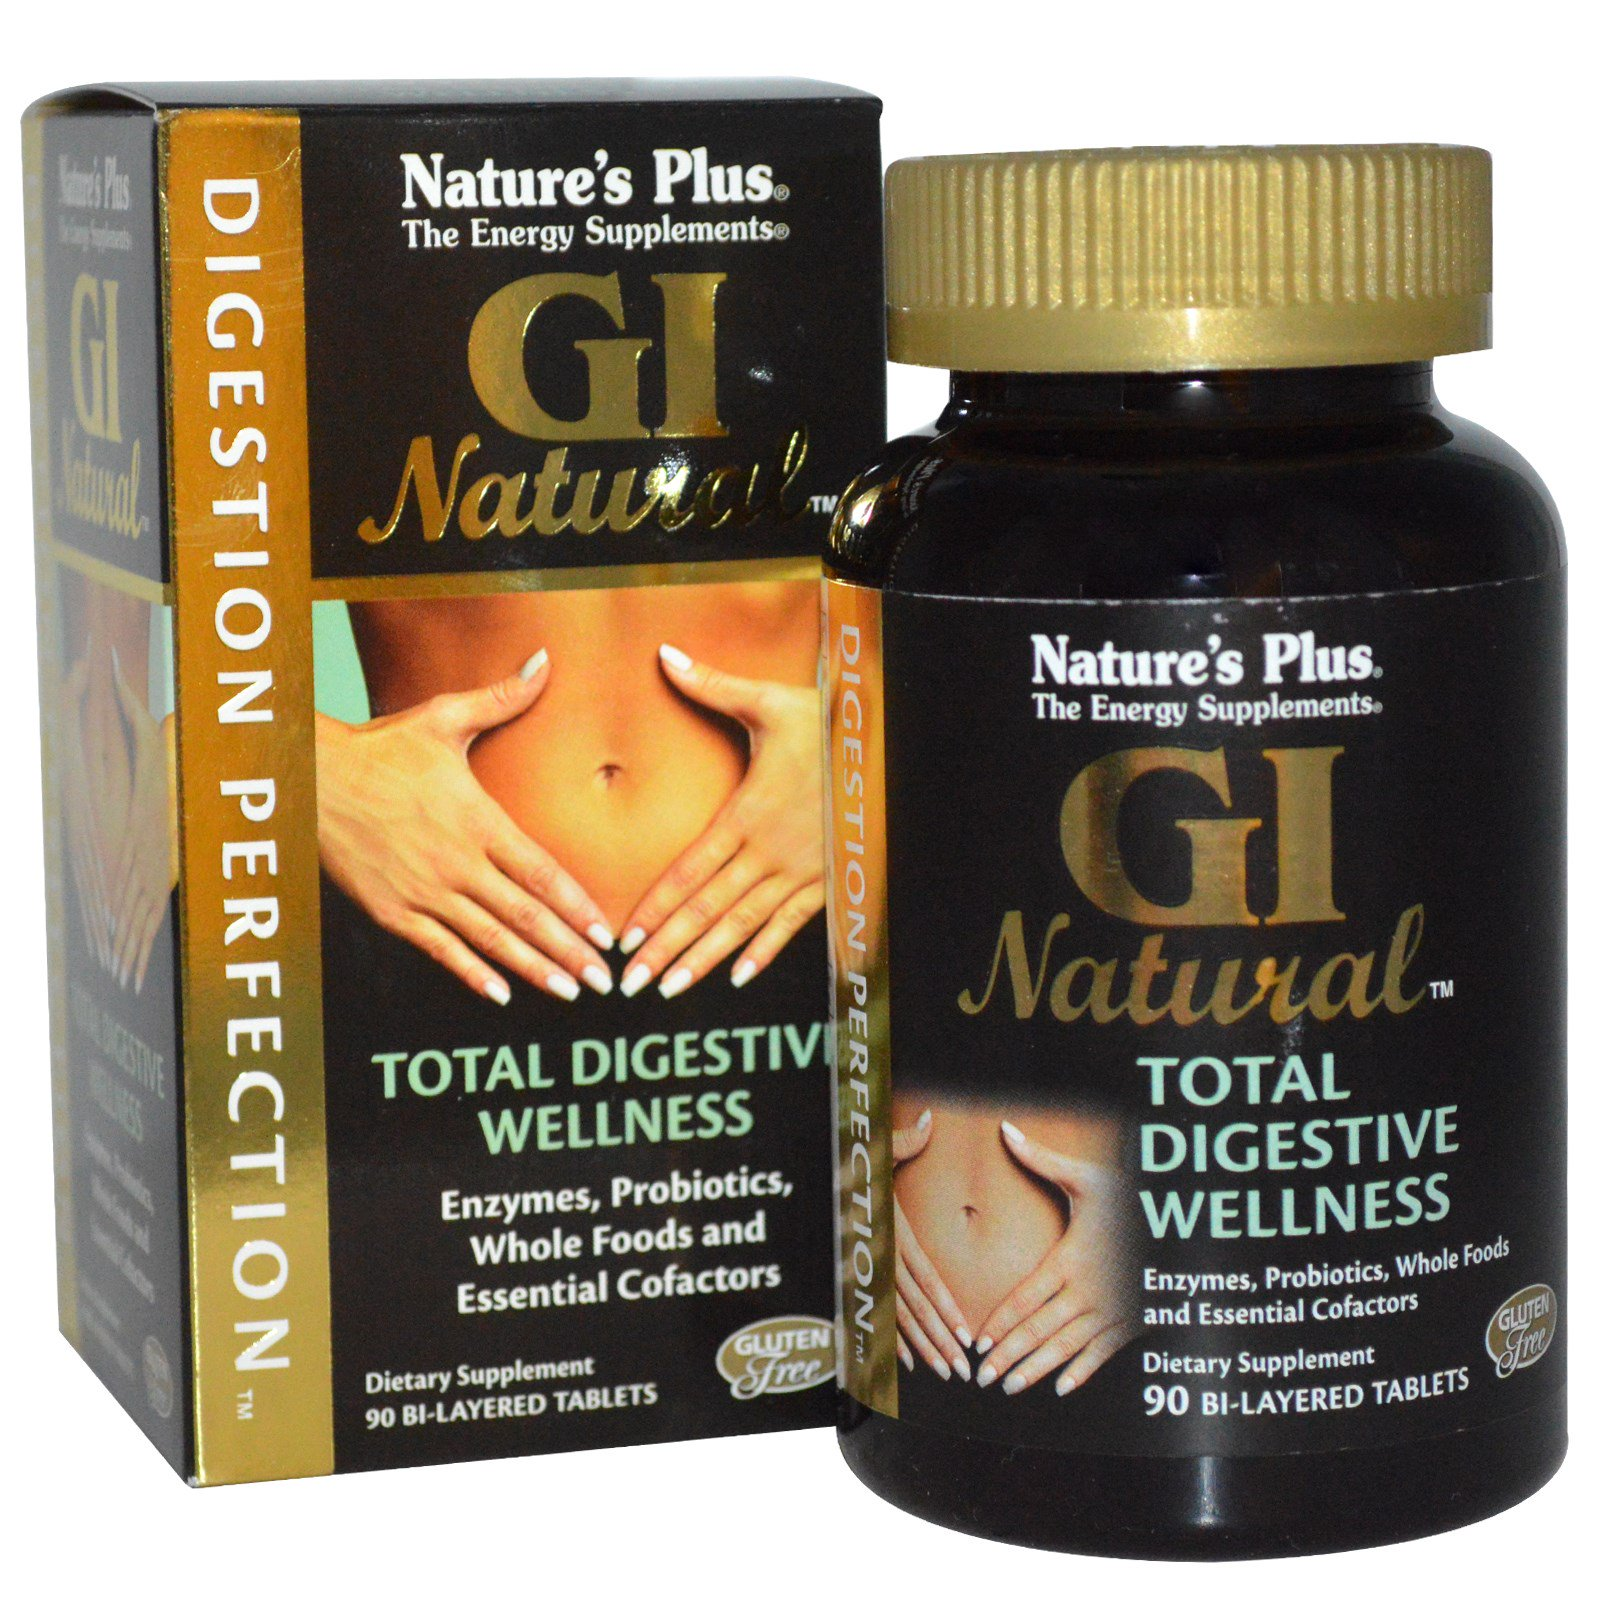 Digestion Perfection, GI Natural (90 Bi Layered Tablets) Nature apos s Plus